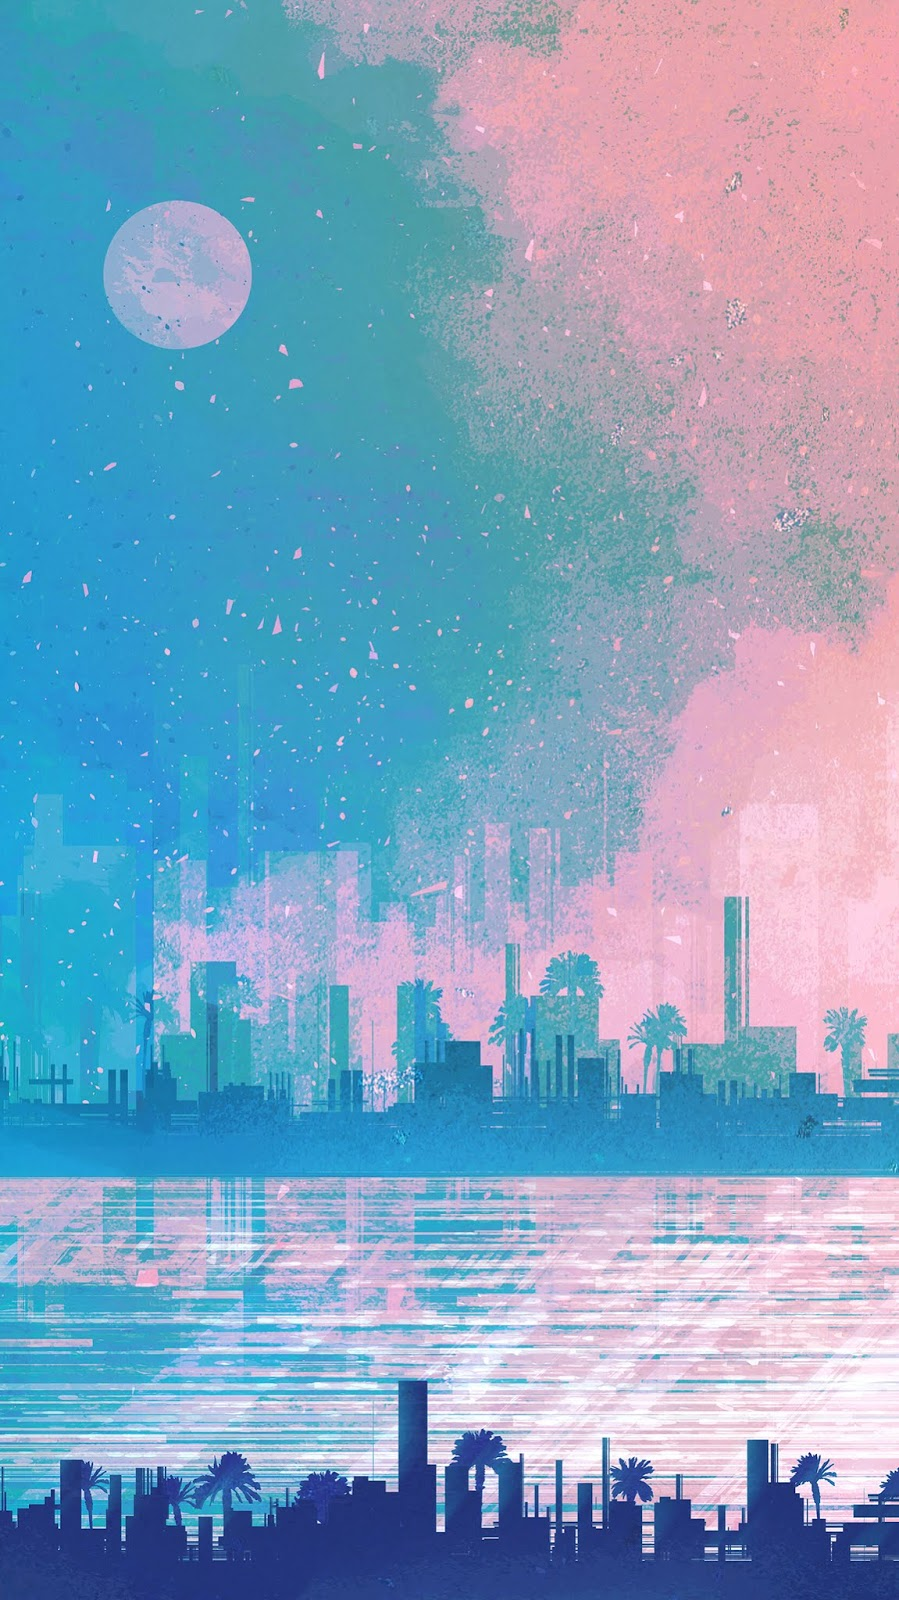 glitch city wallpaper cityscape